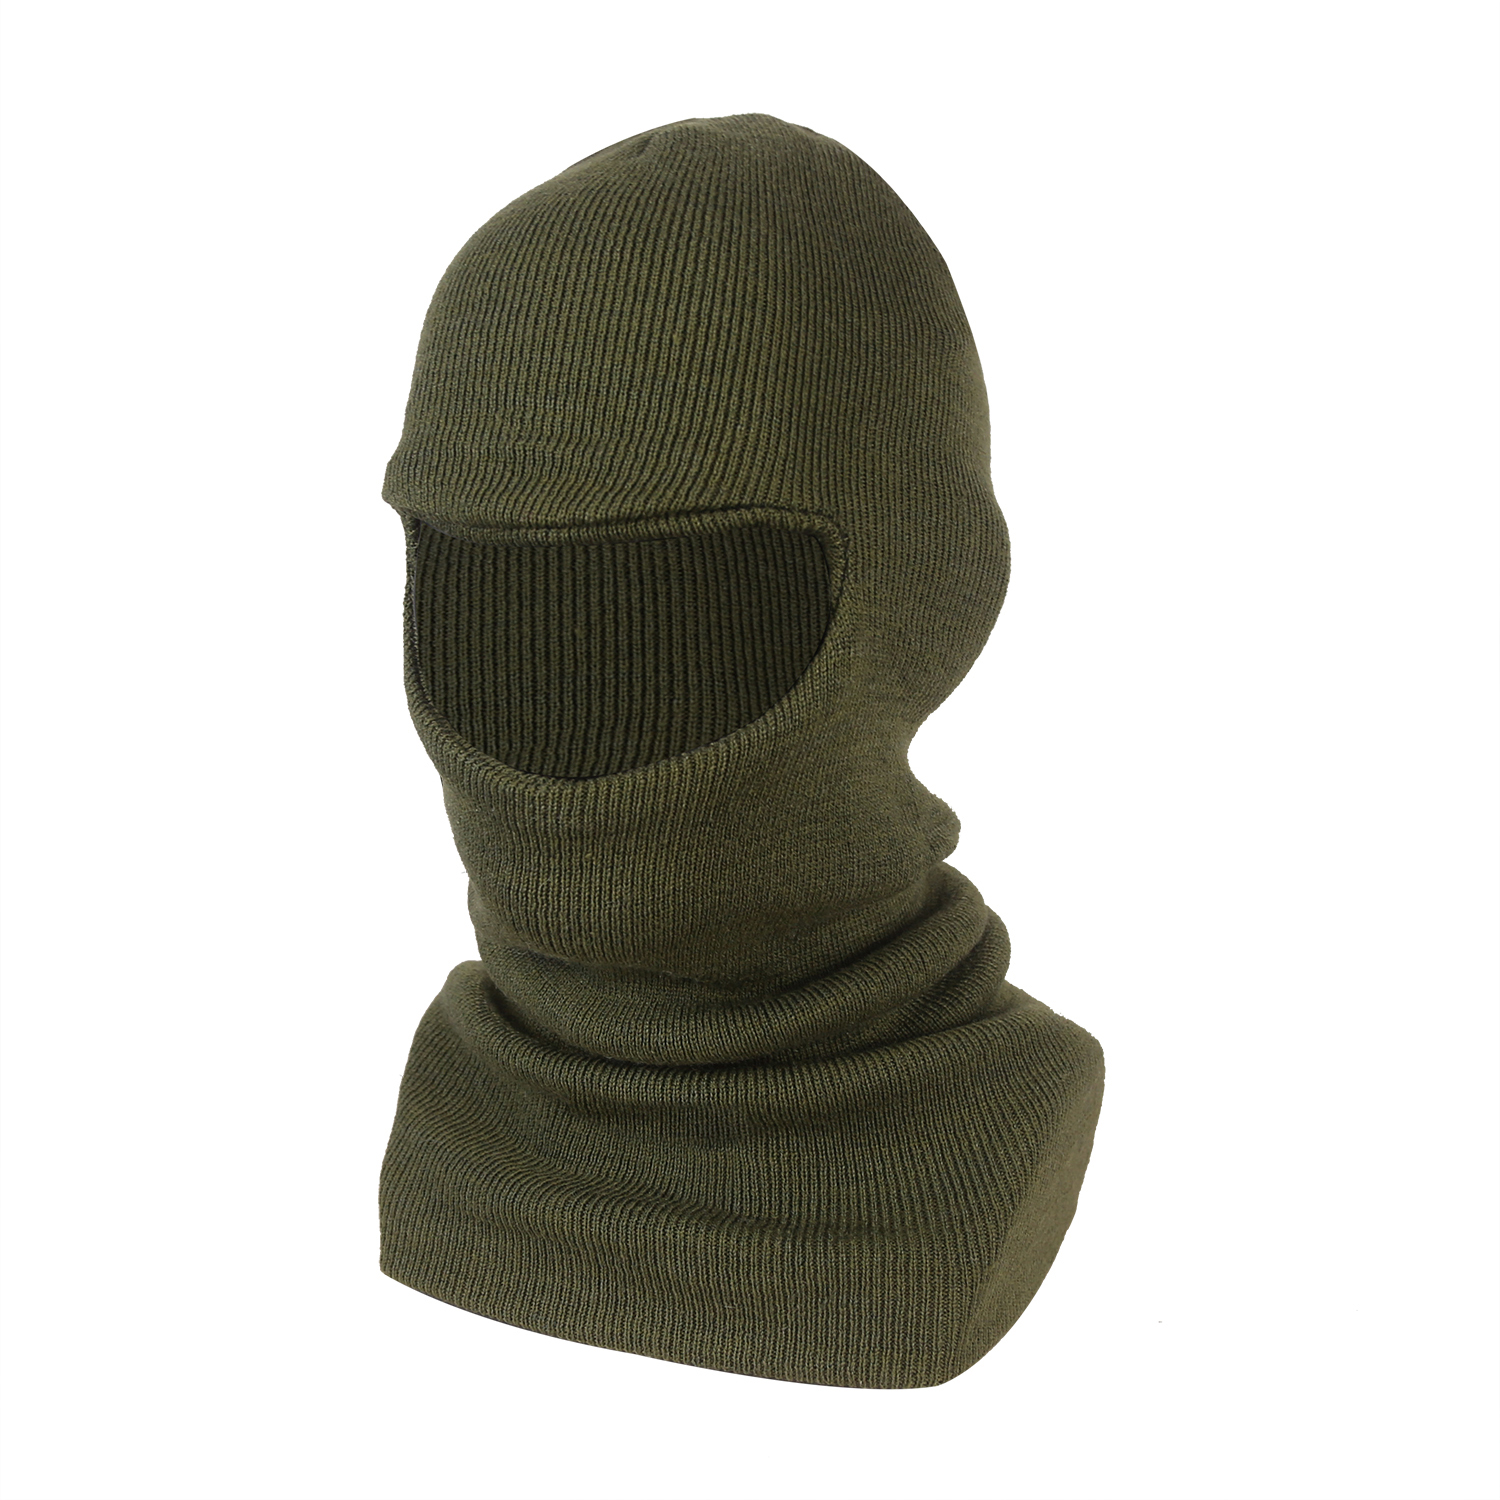 Single Layer Wool/Acrylic Balaclava/WKH-07-O